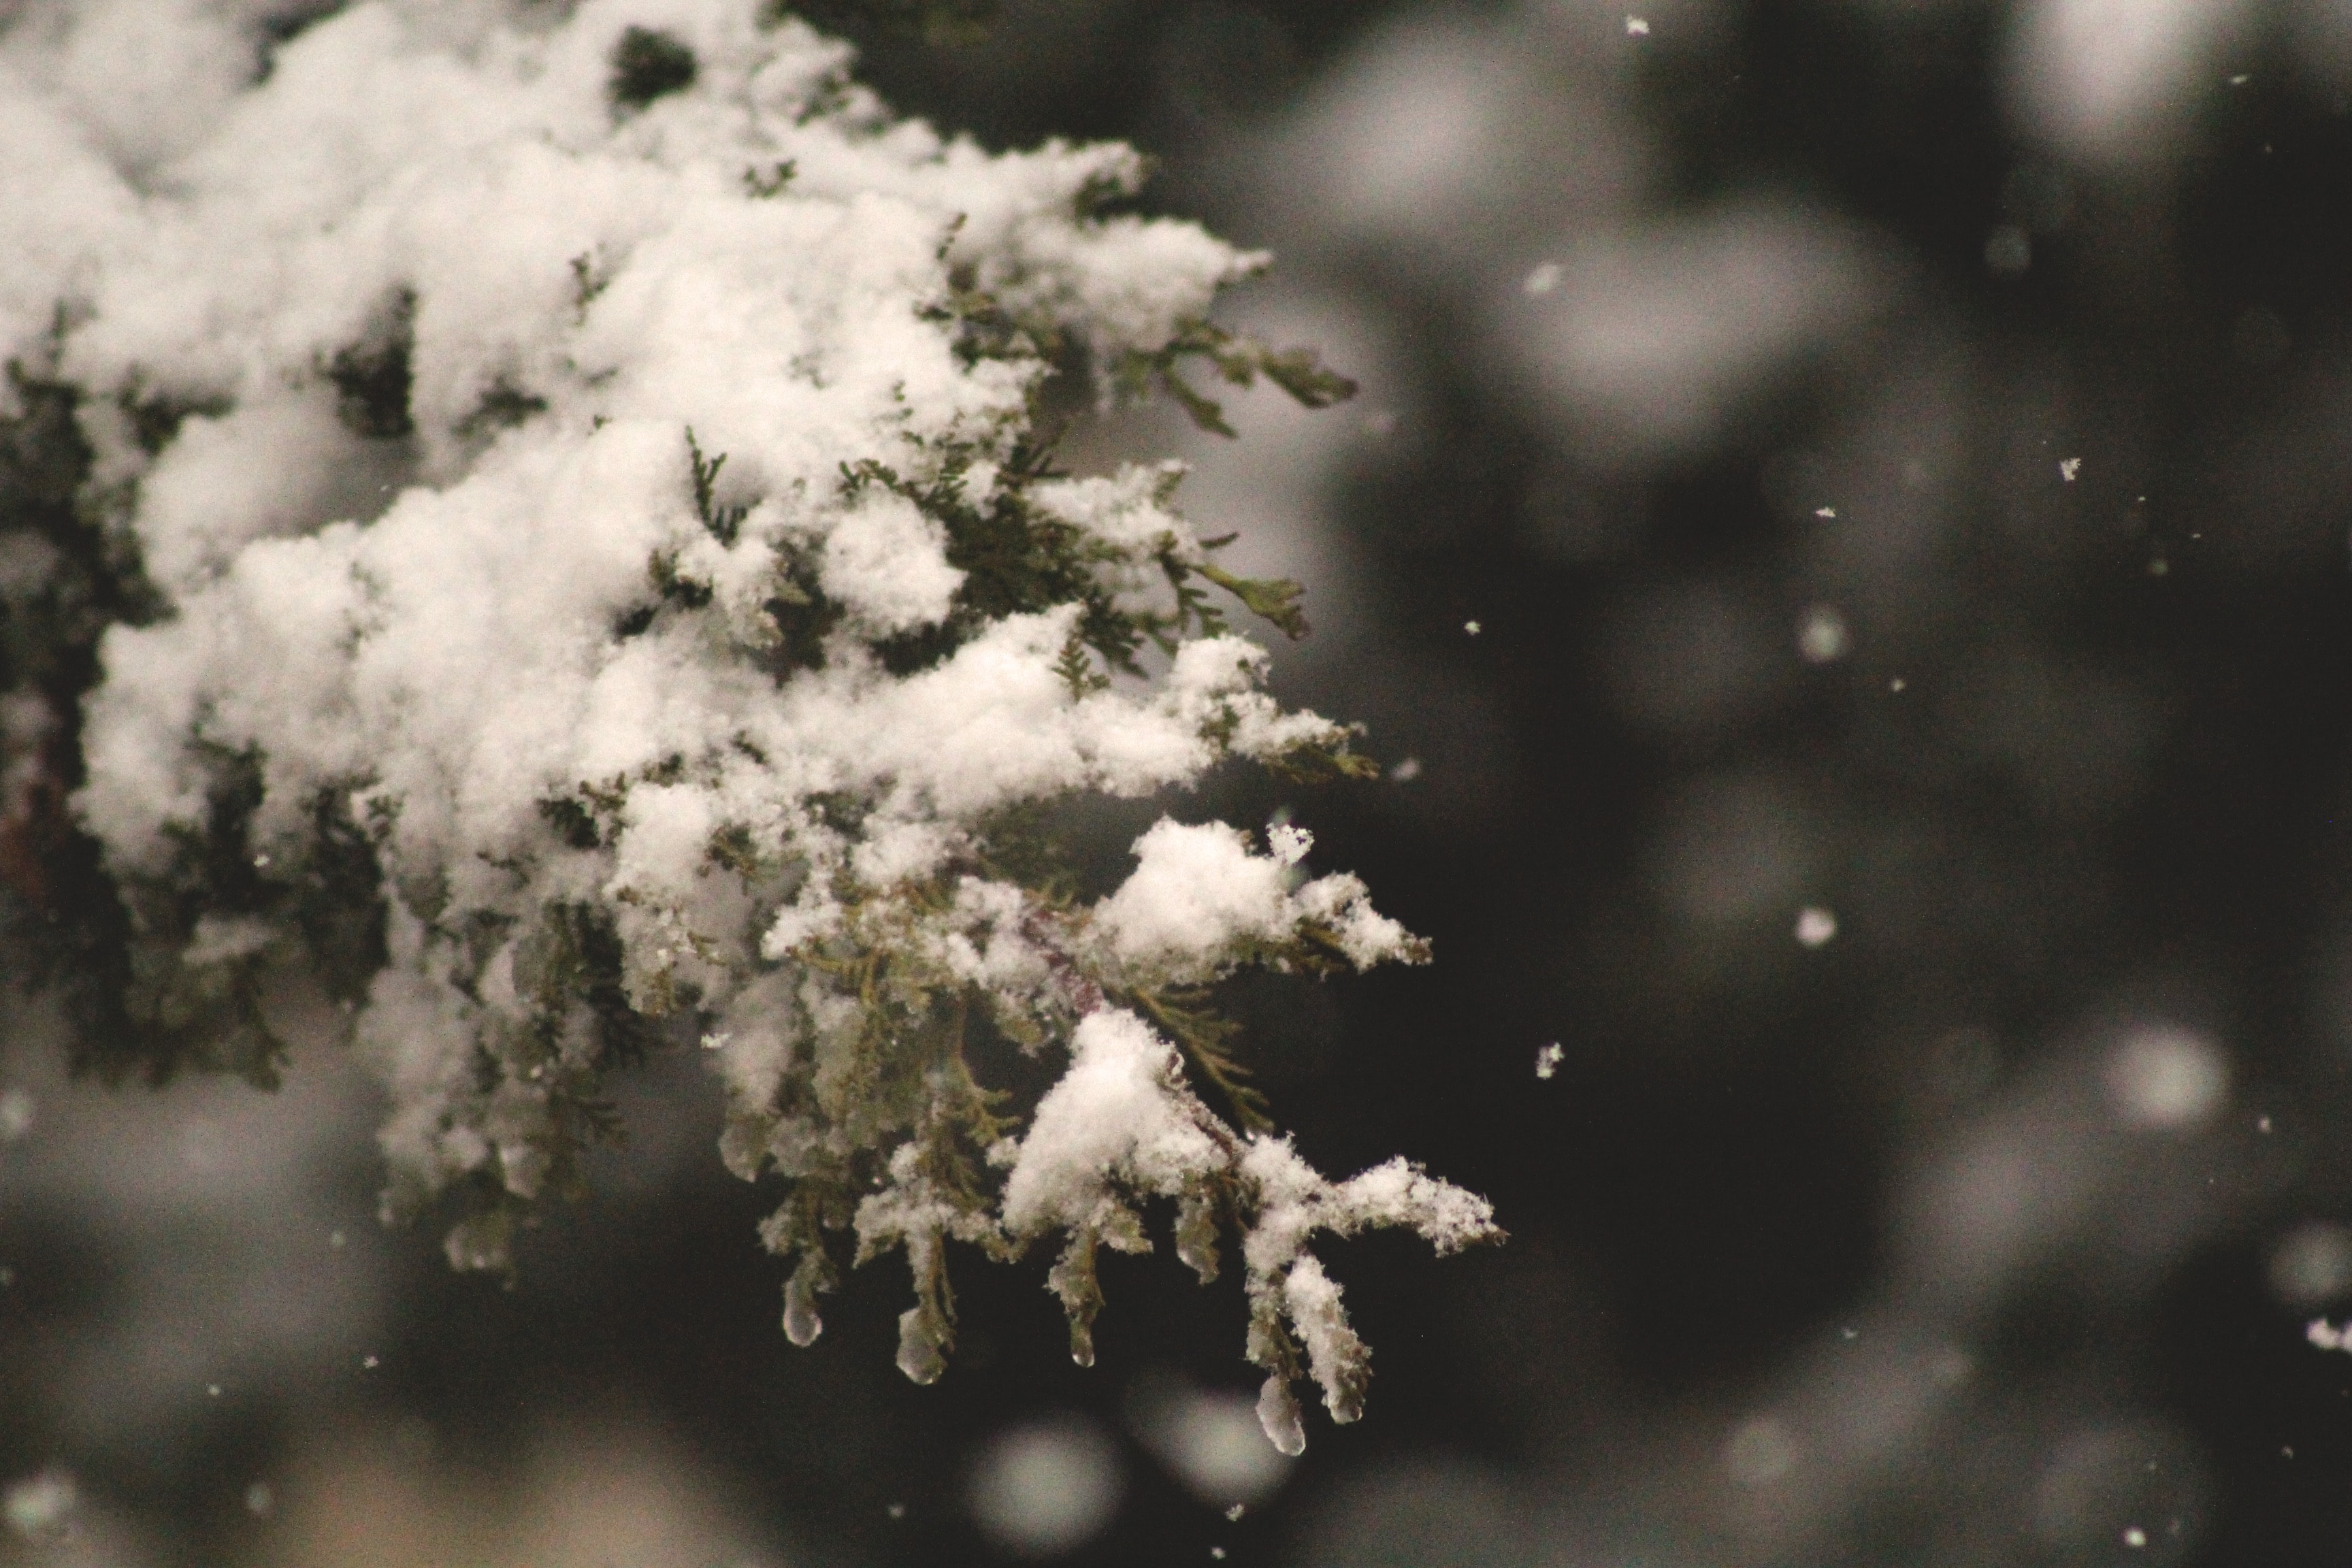 A closeup of a tree branch covered in snow in Amman, Jordan